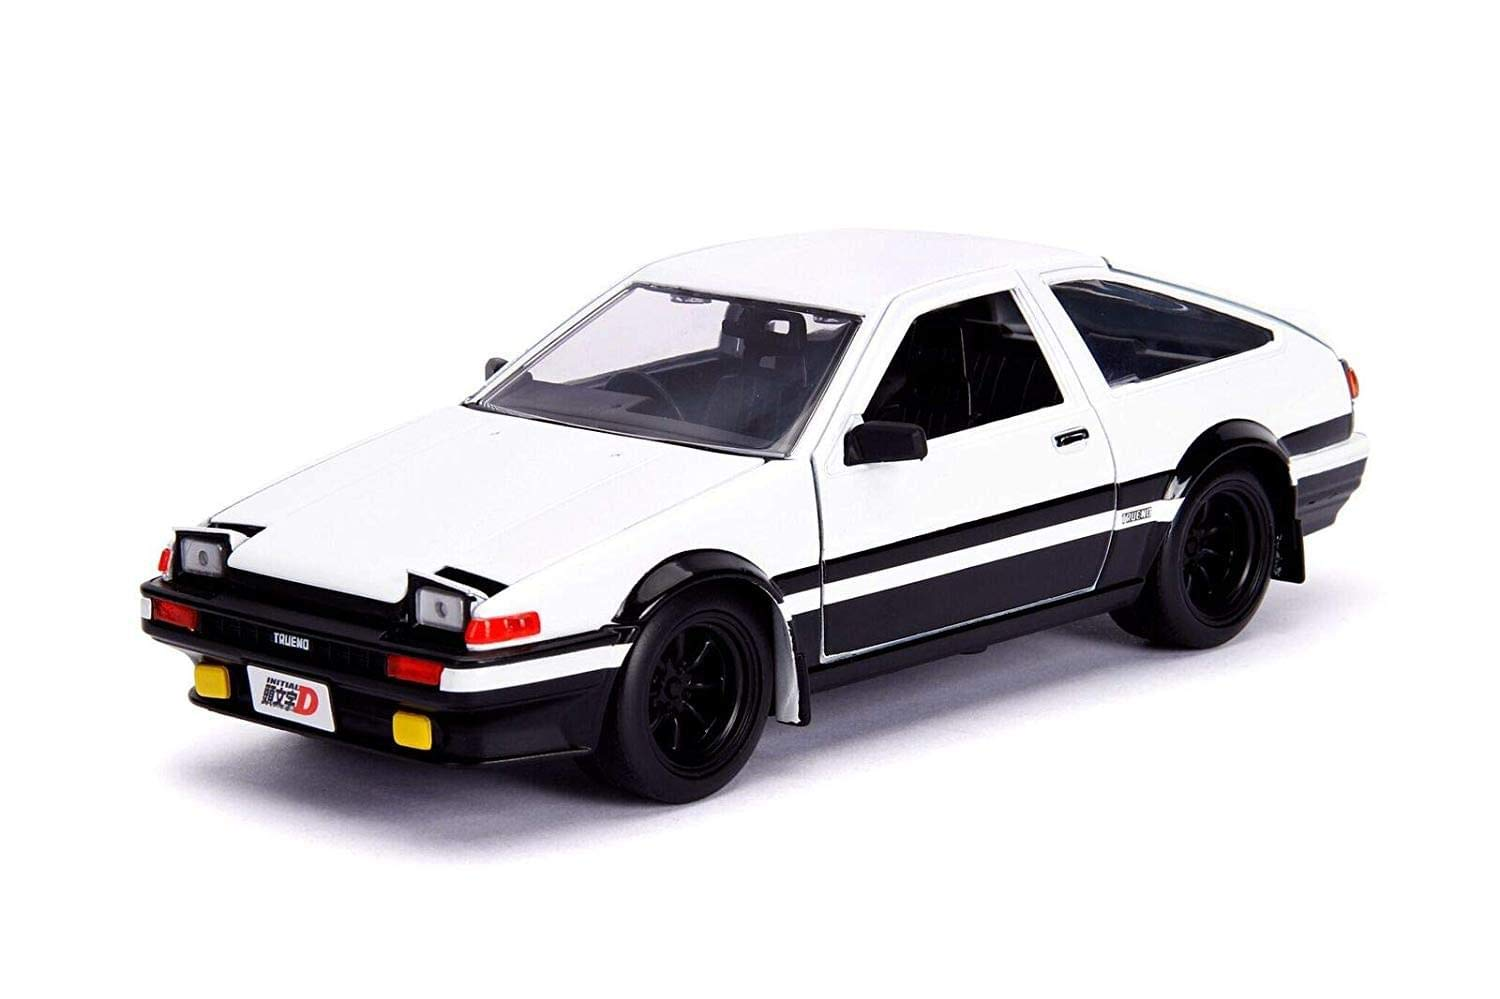 Jada Toys Initial D First Stage (1998) TV Series Hollywood Rides Series Toyota Trueno (AE86) with Takumi Diecast Figure; 1/24 Diecast Model Car